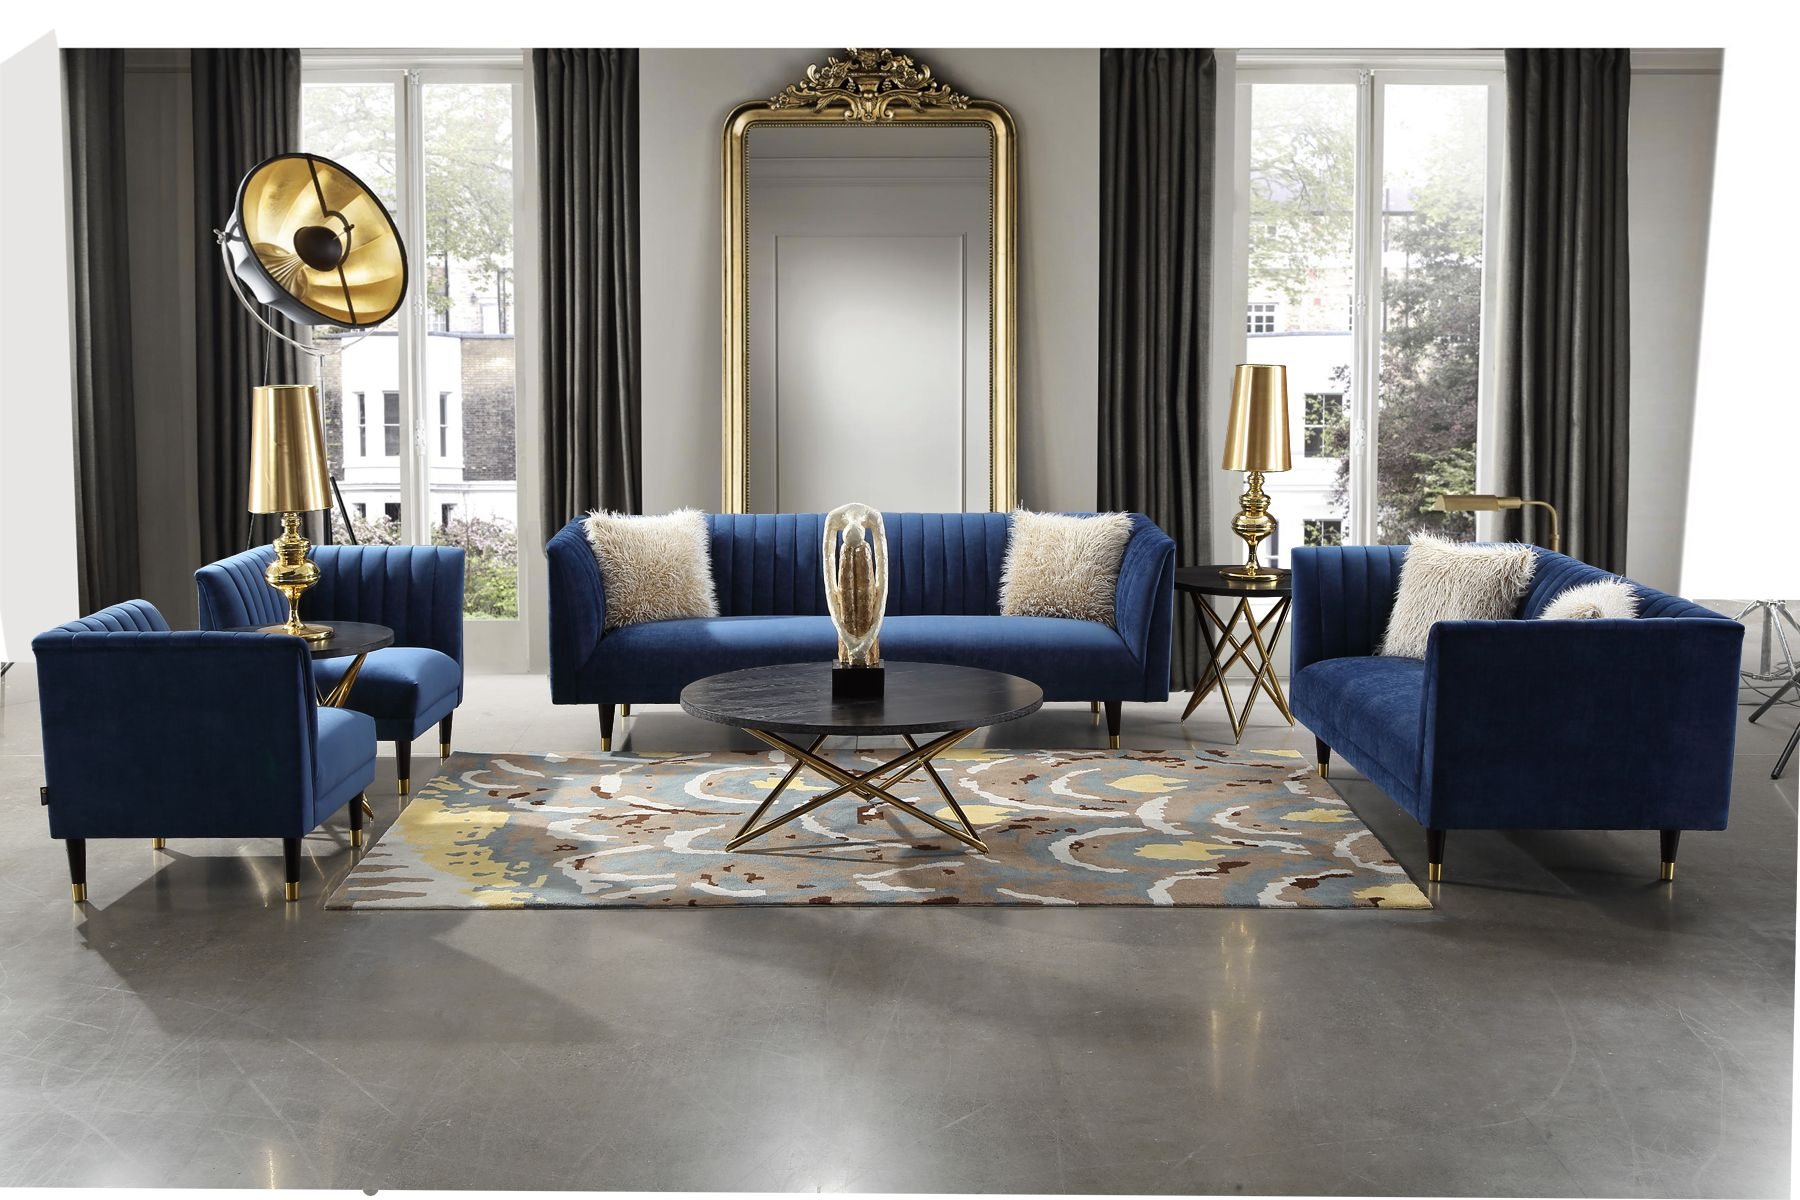 Royal Blue Elegant Sofas Blue Living Room Decor Blue Sofas Living Room Velvet Sofa Living Room